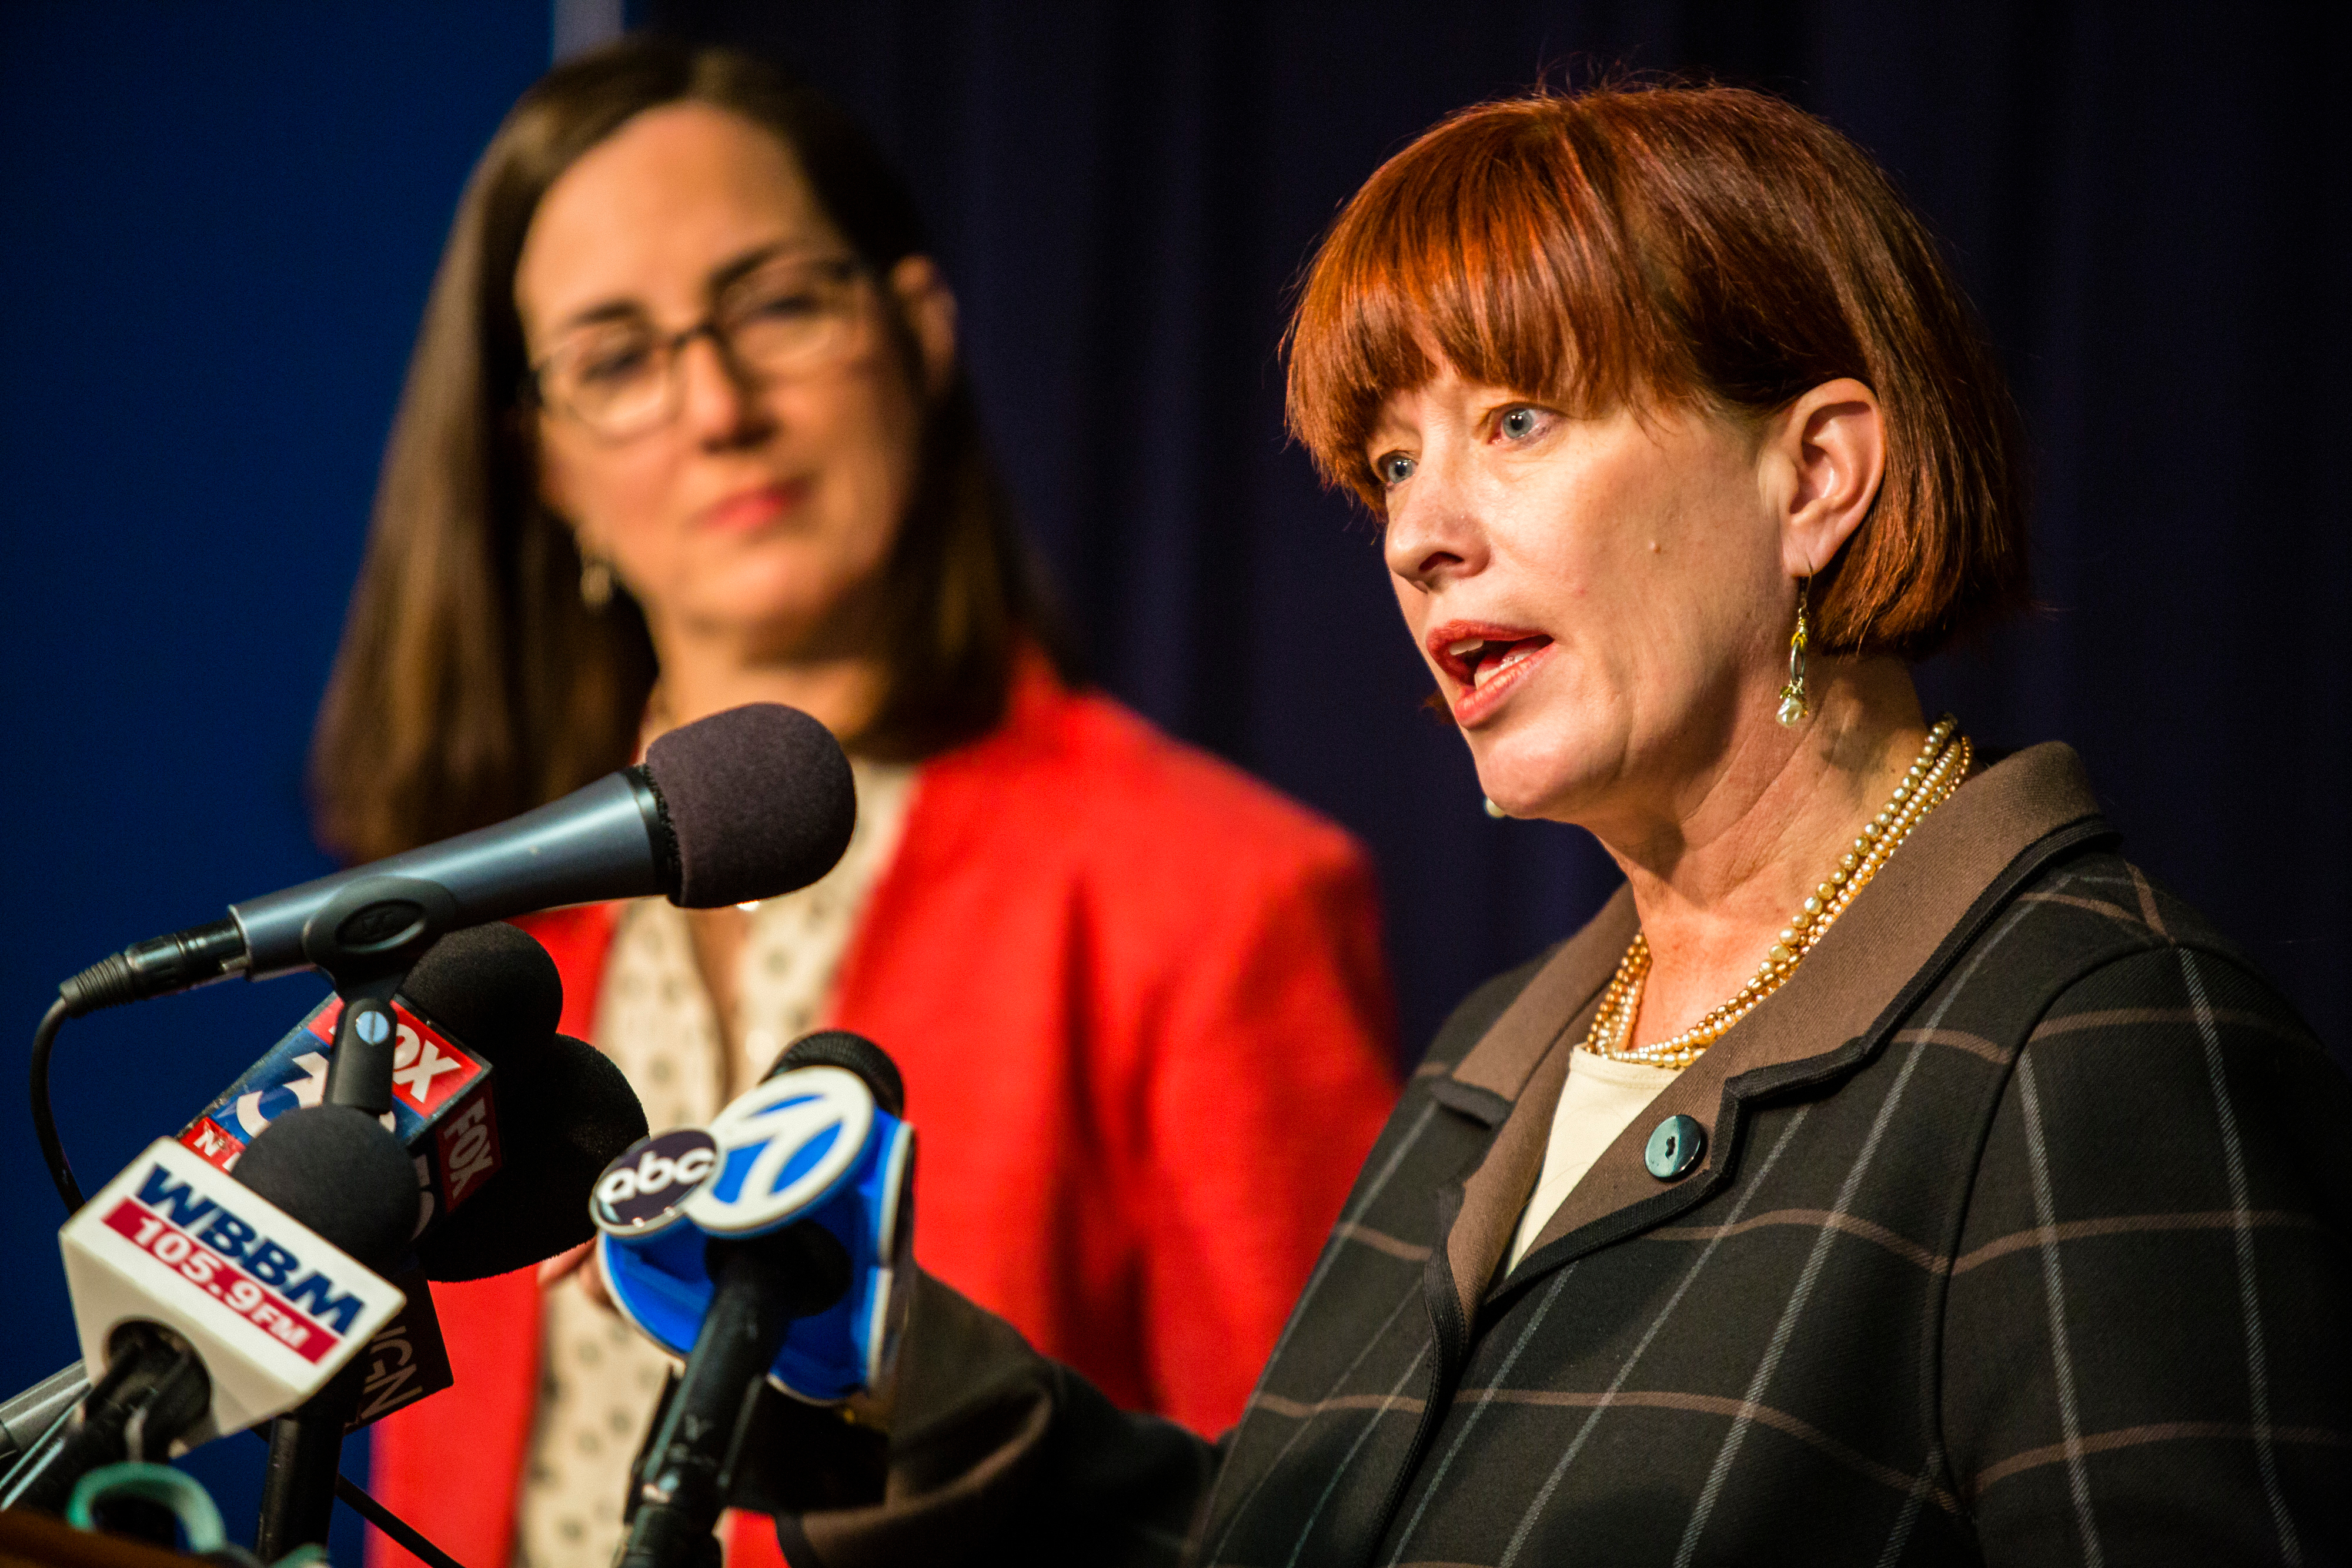 State Sen. Heather Steans, D-Chicago, right; with state Rep. Kelly Cassidy, D-Chicago, at a news conference in 2017.